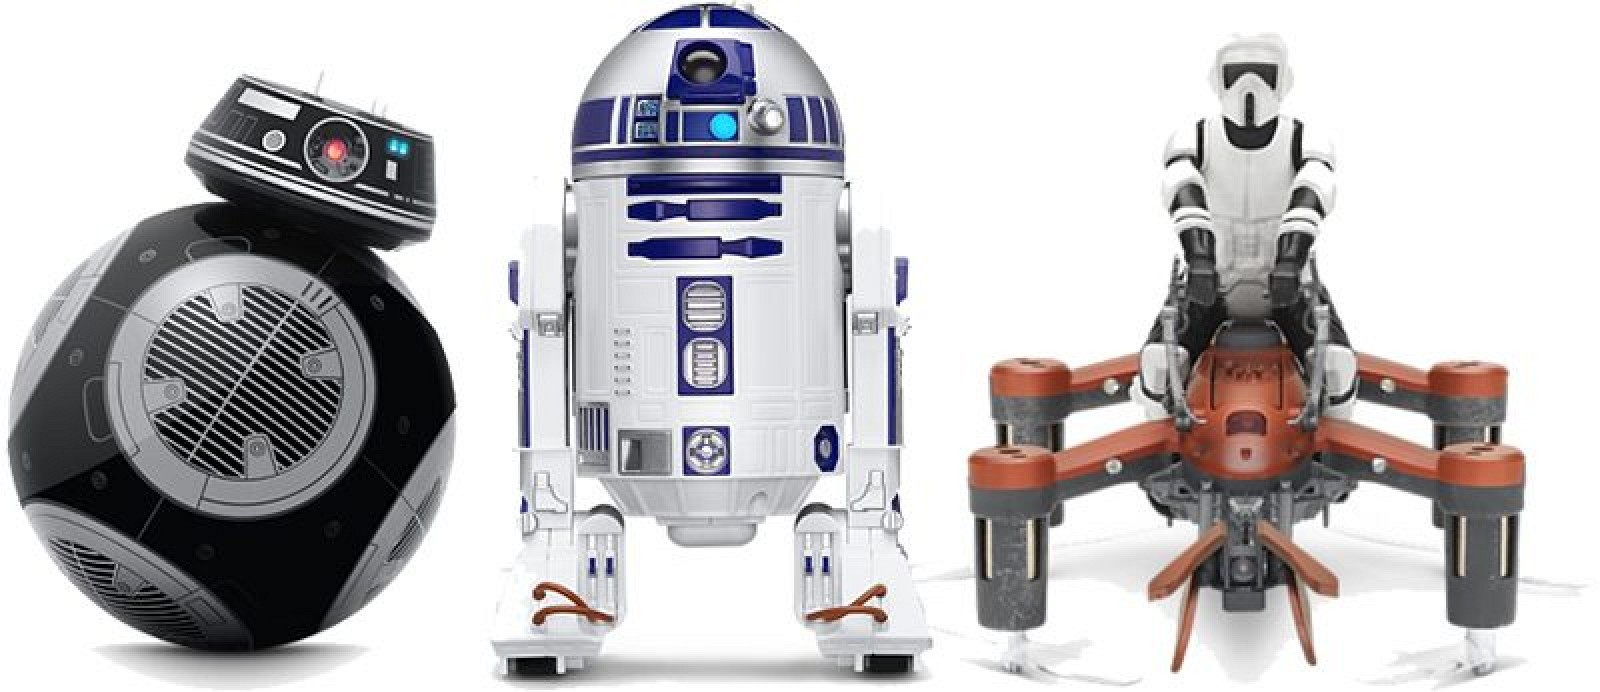 Star Wars Droids Toys : New star wars toys added to apple s online store